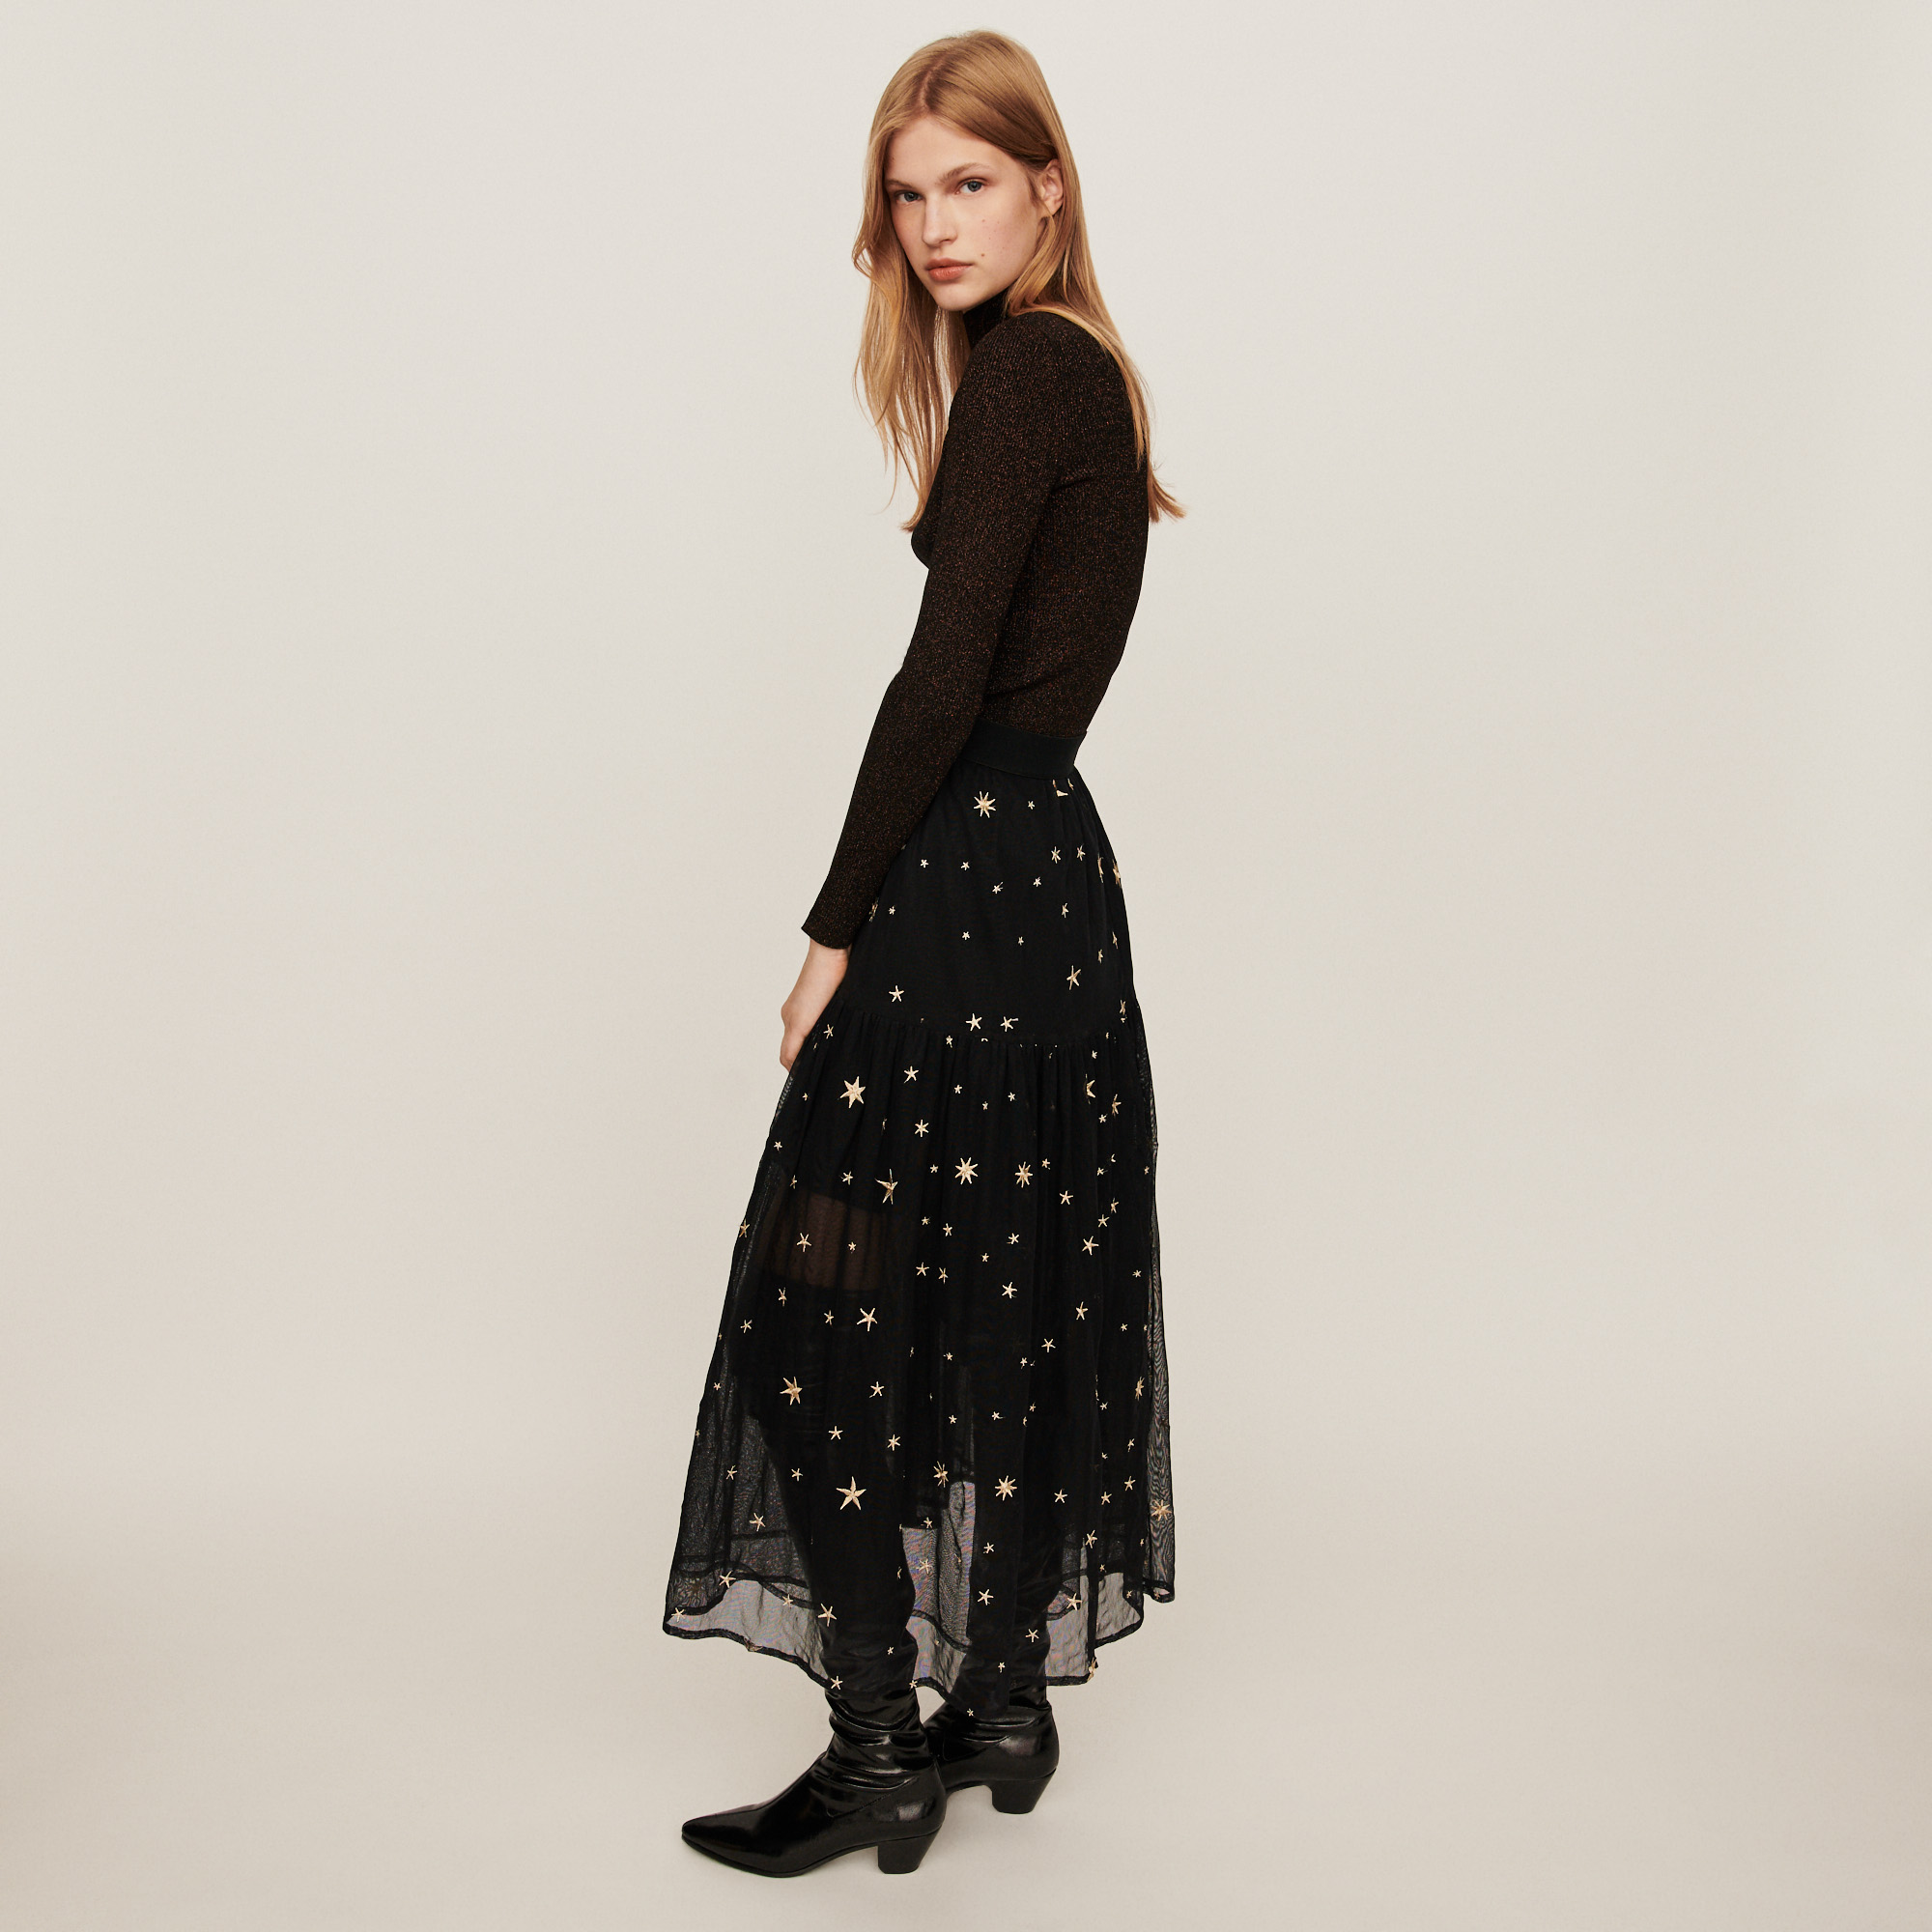 Star embroidered tulle skirt - Multiclr